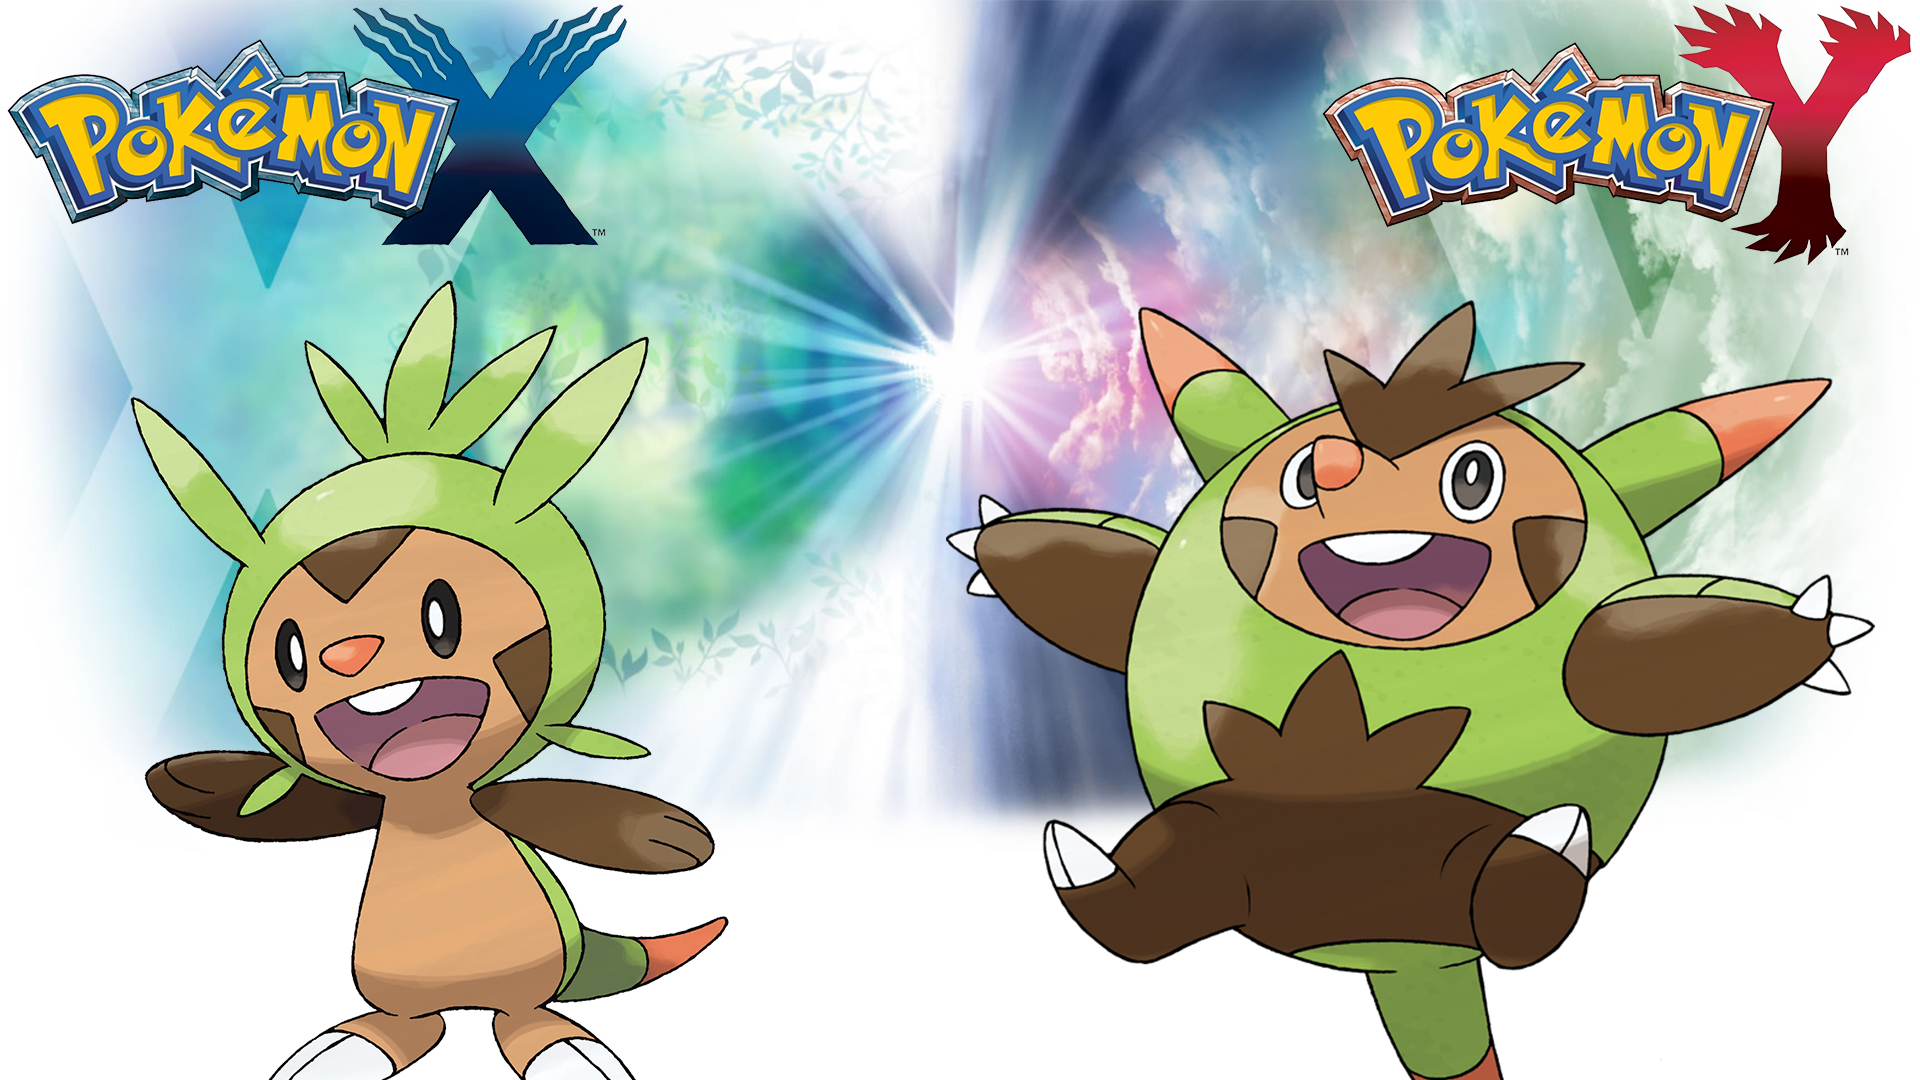 Pokemon X Y   Wallpaper   Chespin and Quilladin by Thelimomon on 1920x1080